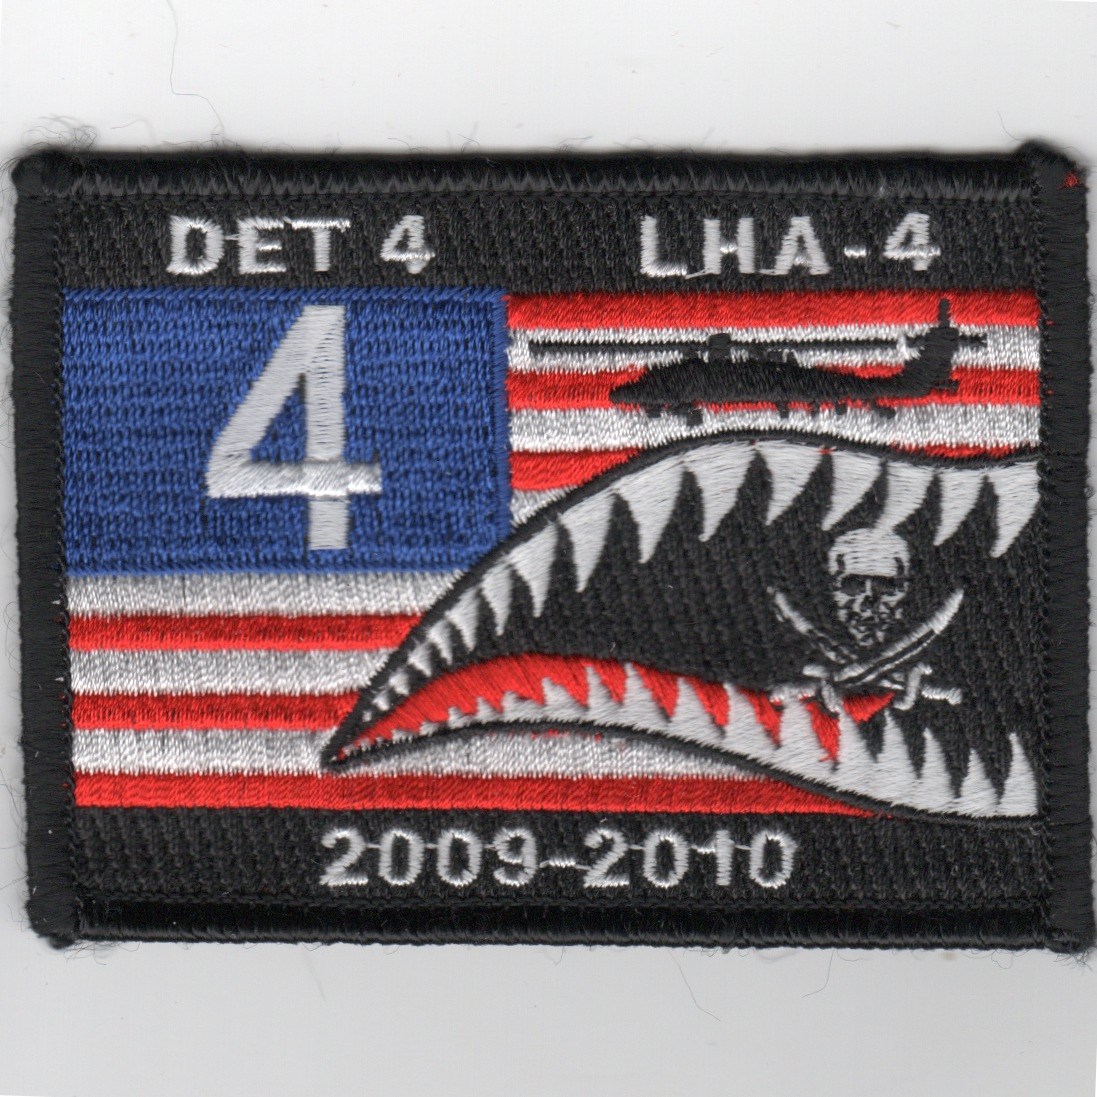 LHA-4 Det-4 2009-2010 Flag Patch